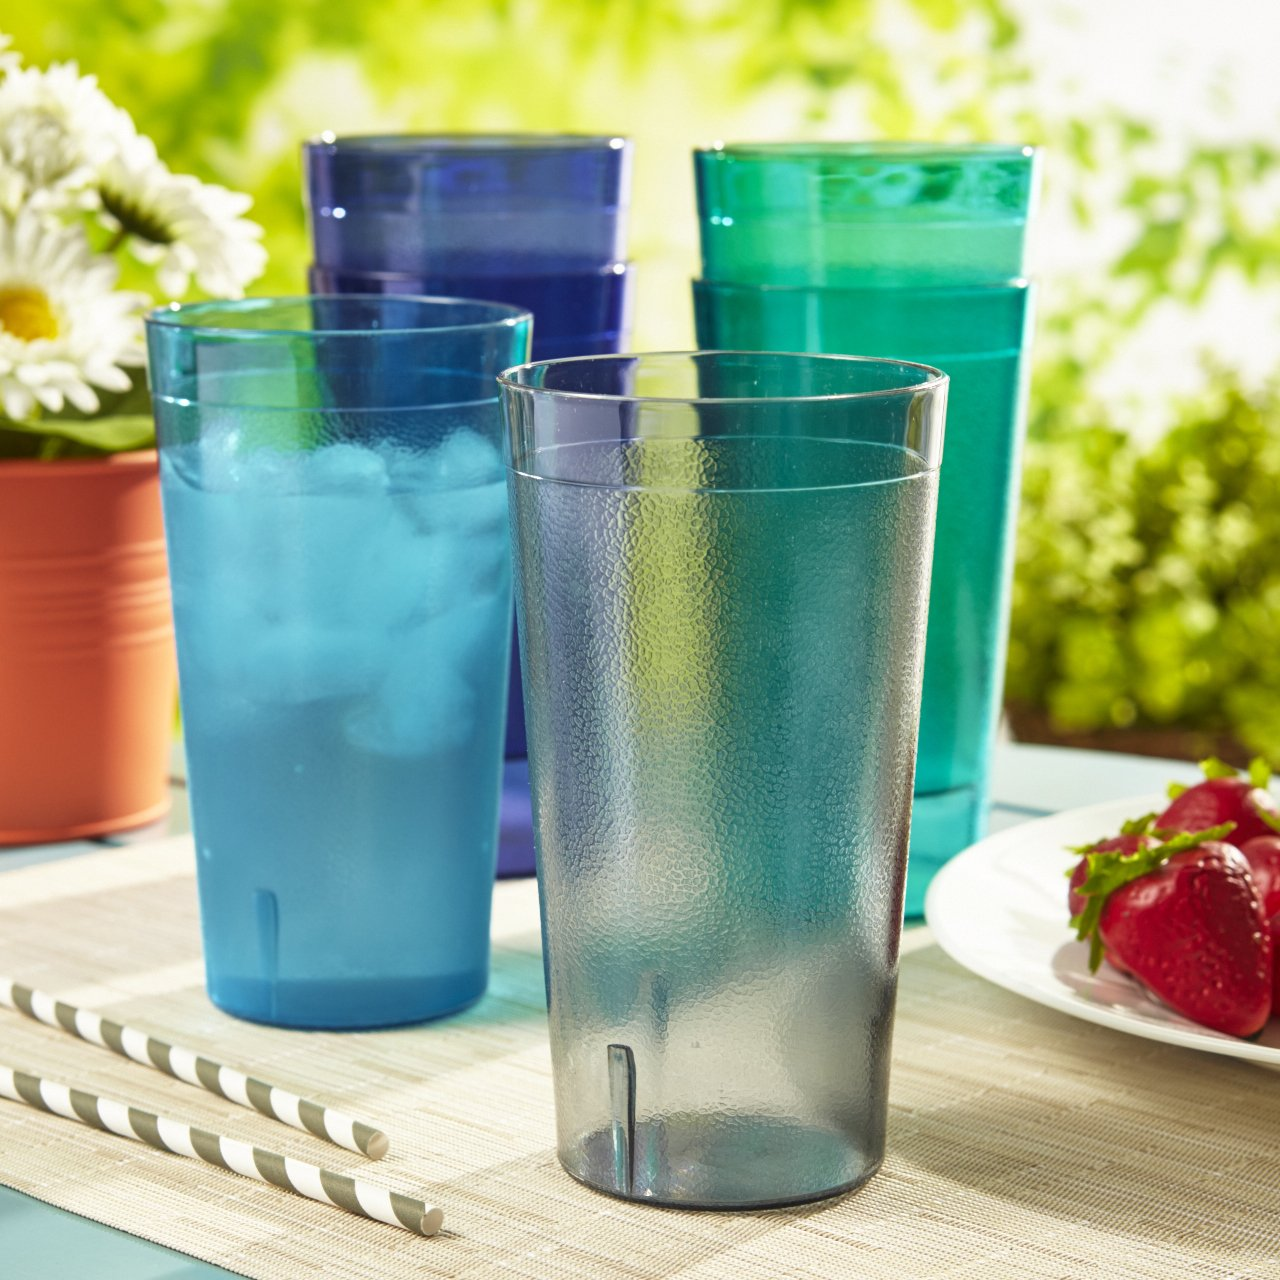 Cafe 20-ounce Break-Resistant Plastic Restaurant-Style Beverage Tumblers | Set of 16 in 4 Coastal Colors by US Acrylic (Image #2)